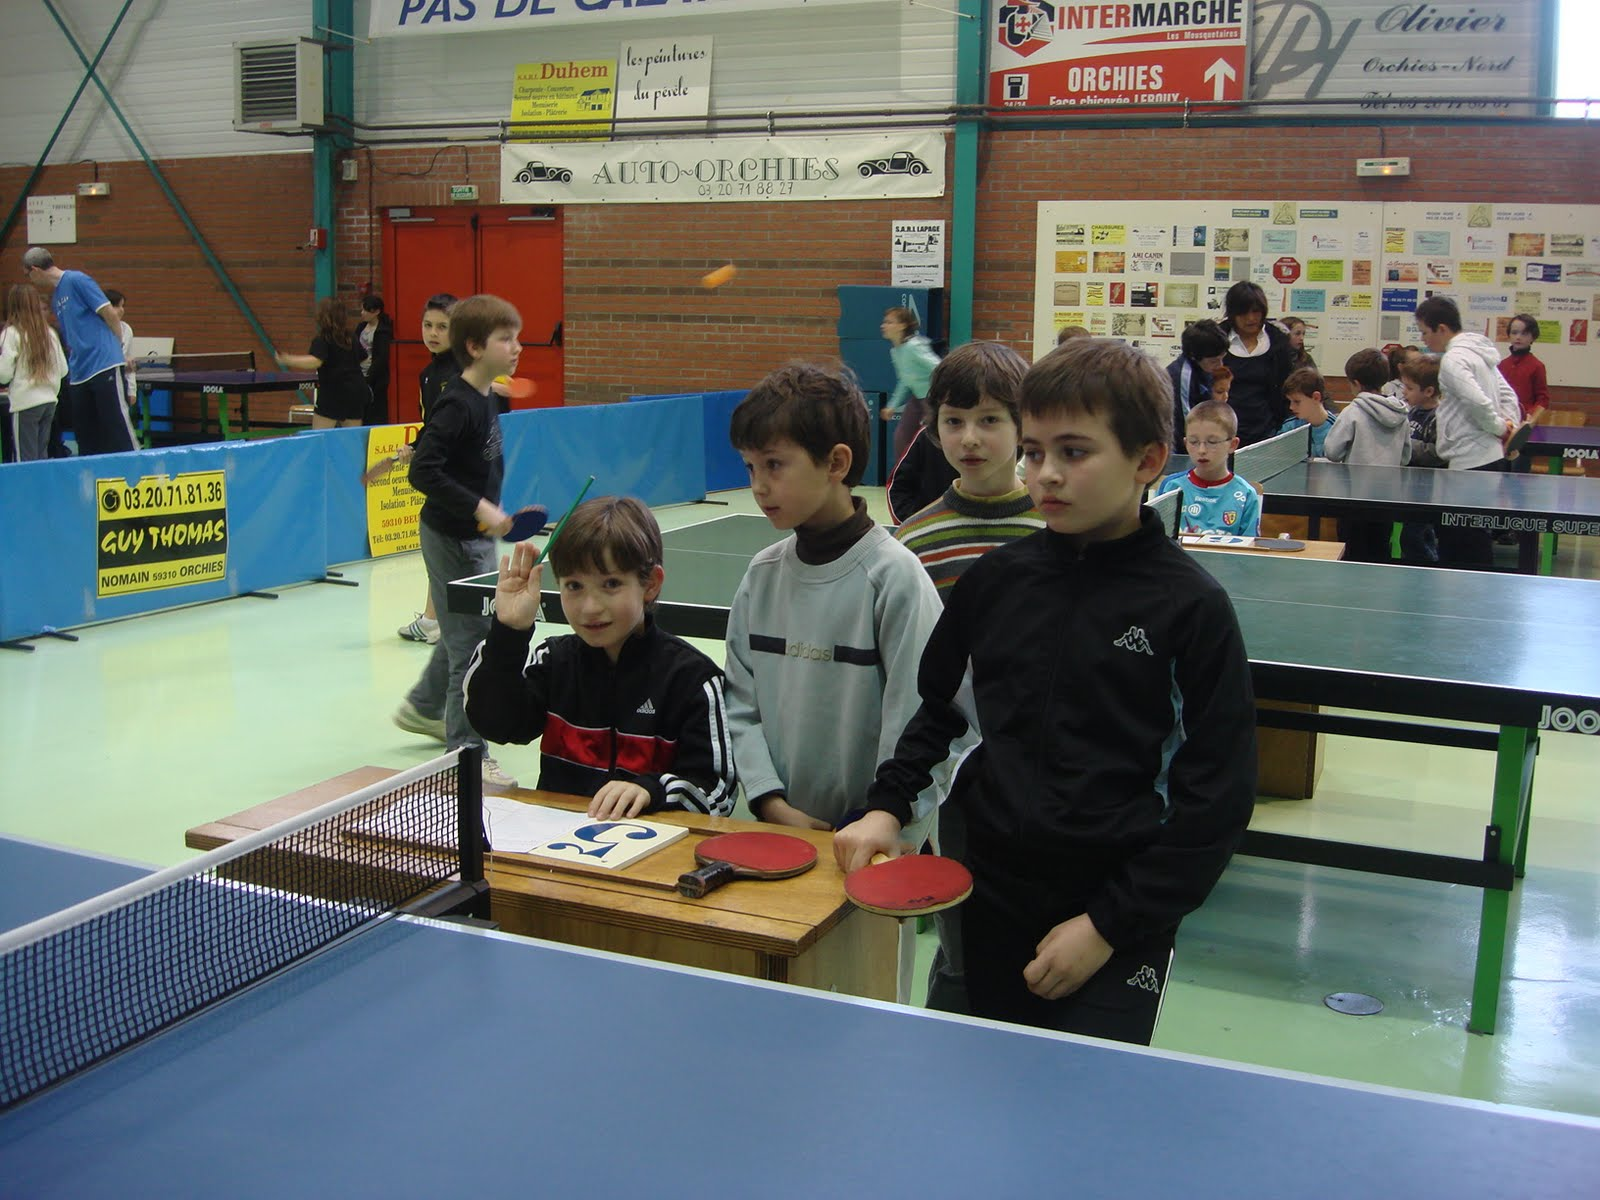 Rencontre tennis usep